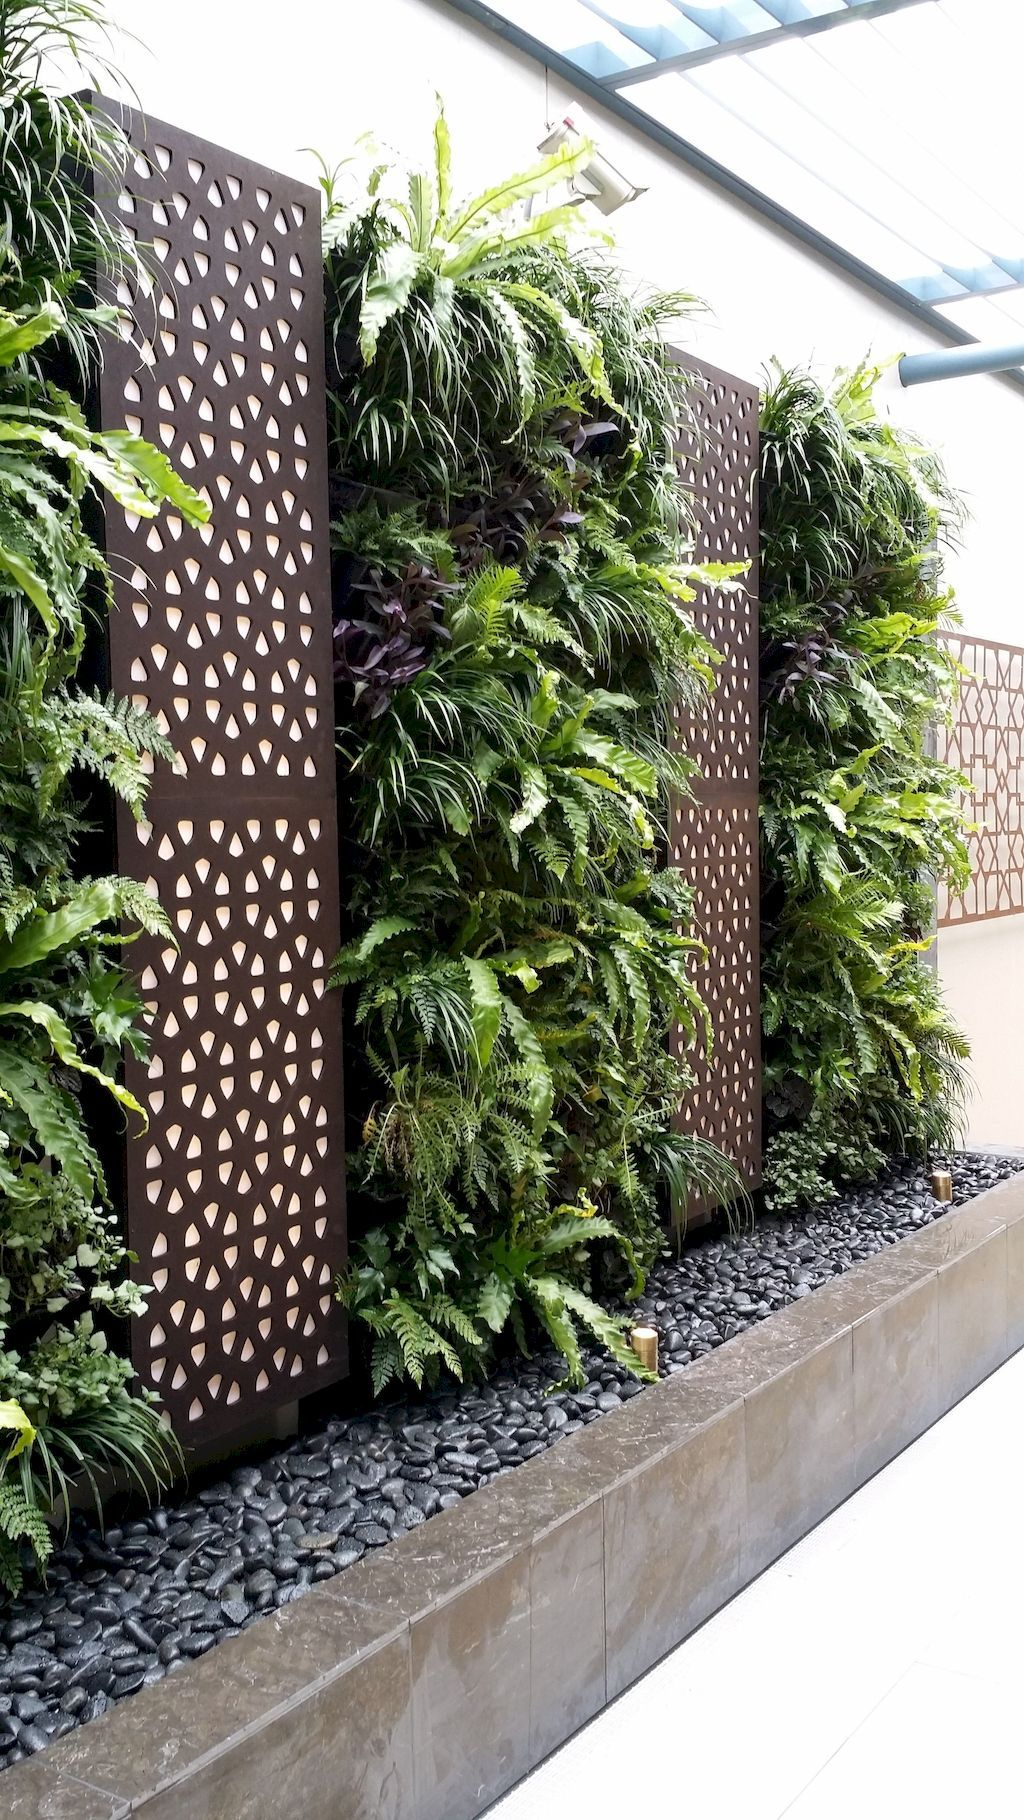 80 Amazing DIY Vertical Garden Design Ideas #outdoorgardens